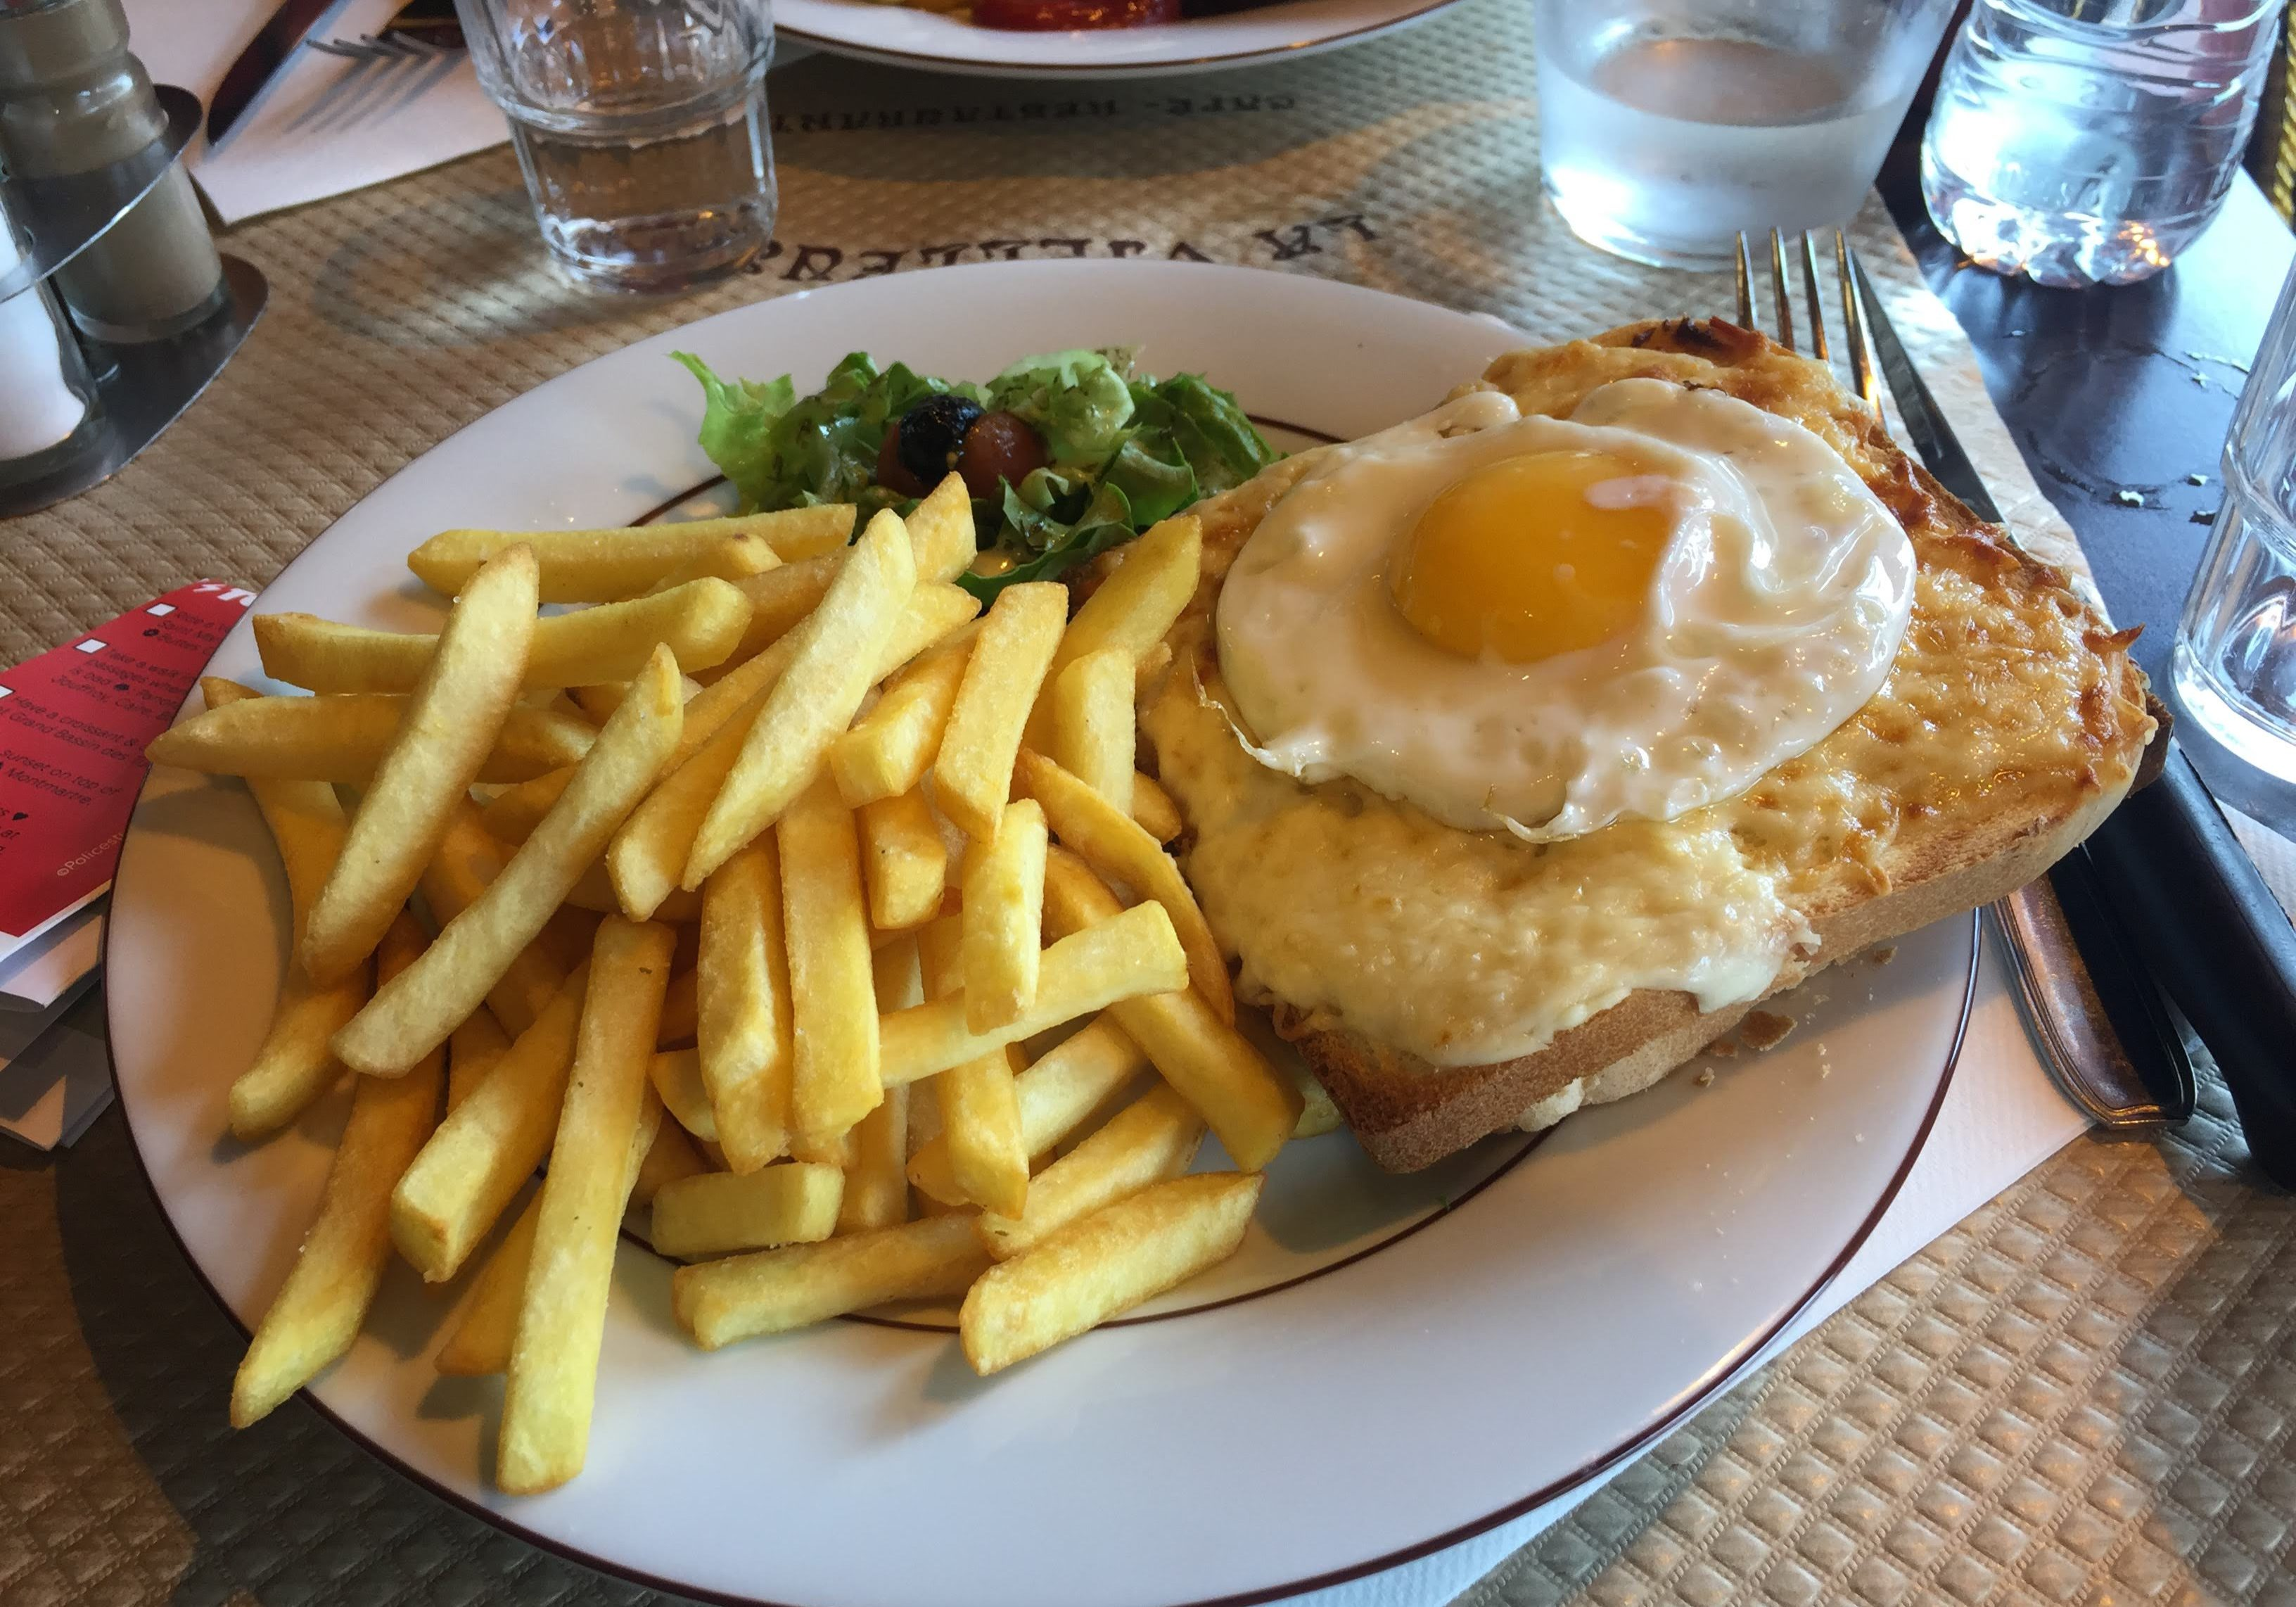 Croque Madame, top things to eat and drink, eat, drink, food, paris, france, europe, fries, french fries, eating, drinking, travelling, blogging, travel, travels,